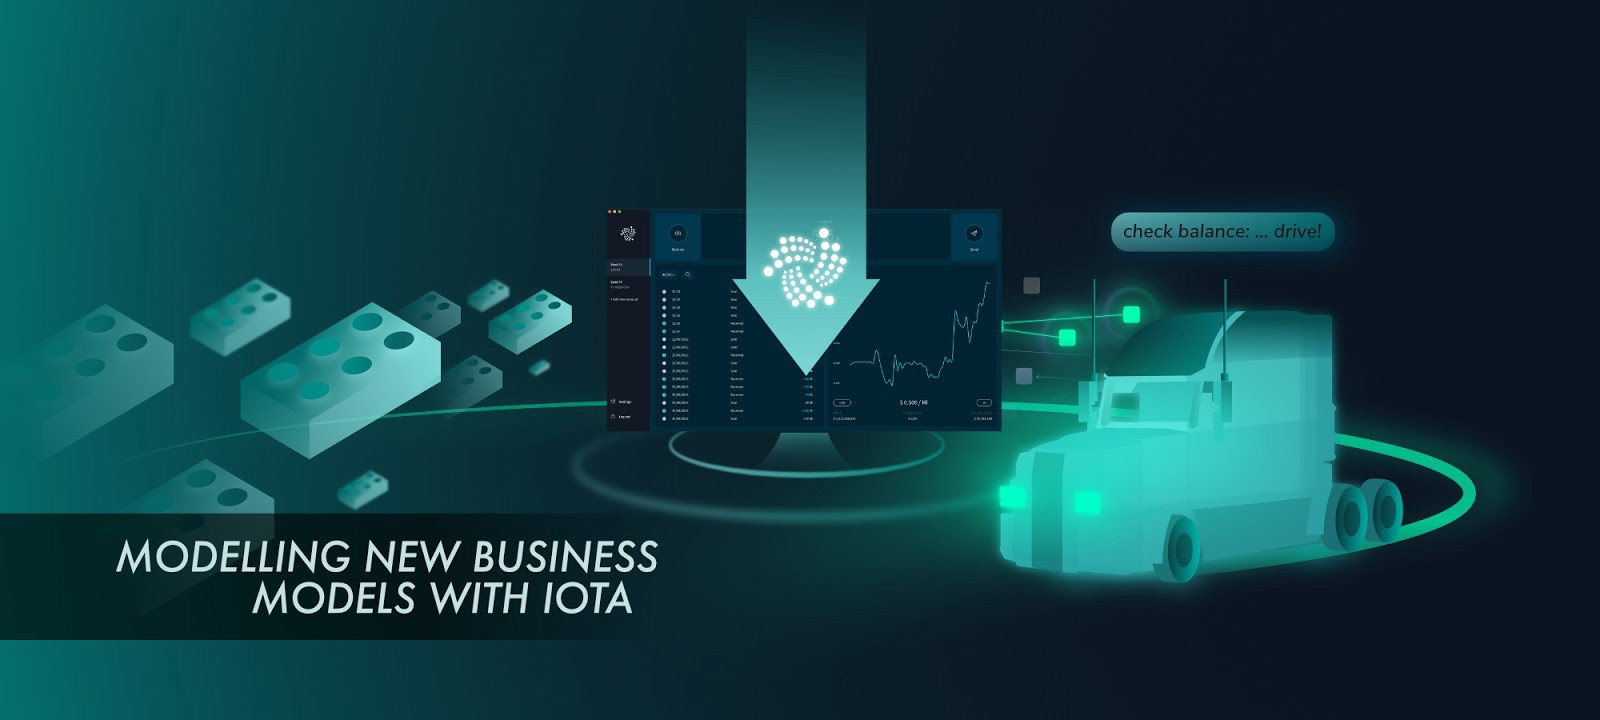 Modelling New Business Models with IOTA